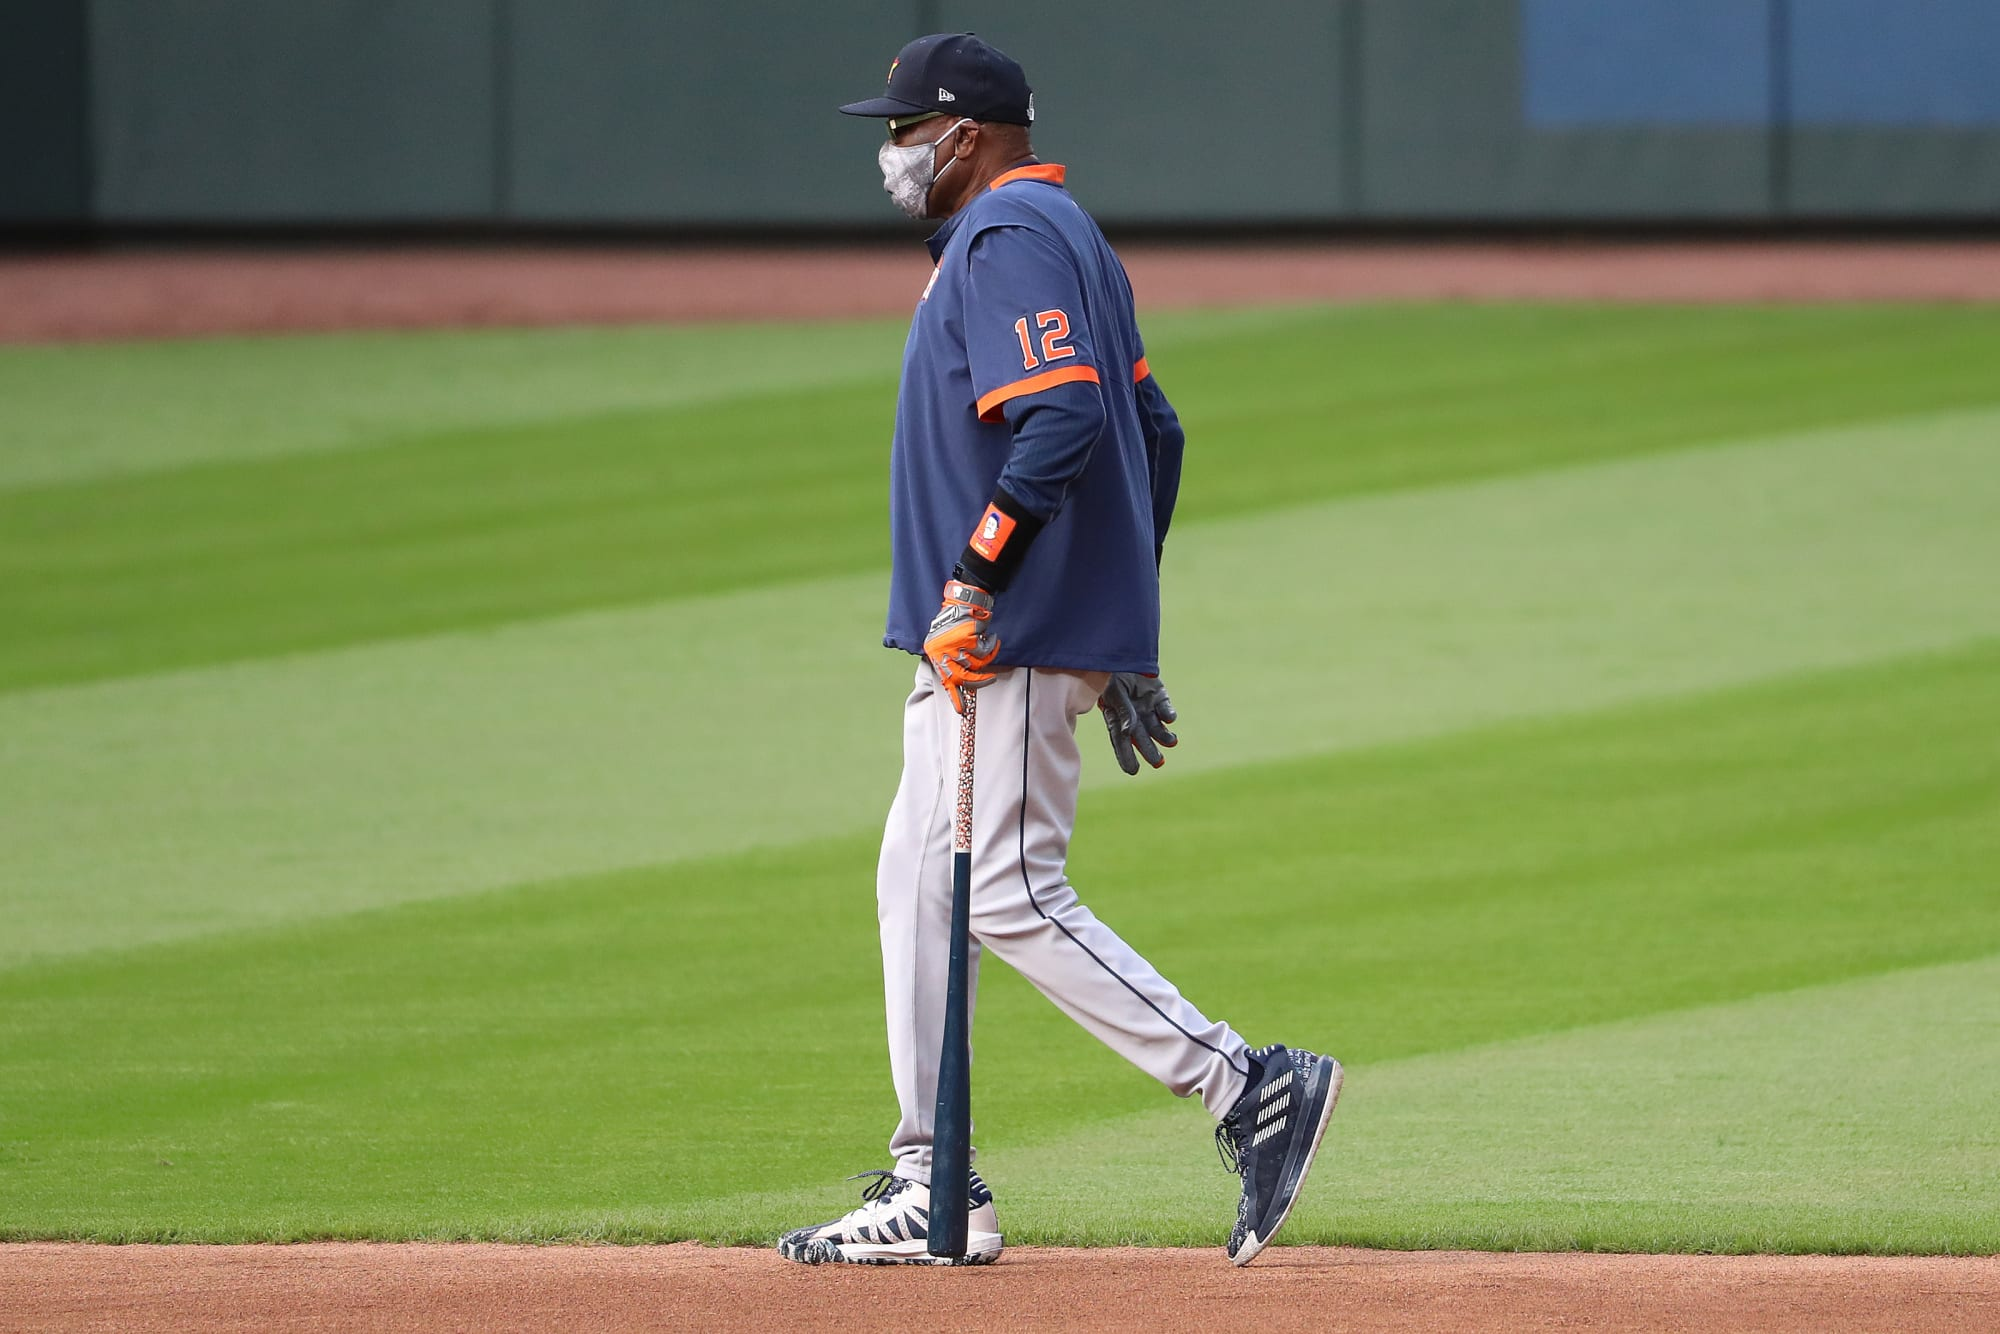 Houston Astros: Dusty Baker makes history with playoff berth